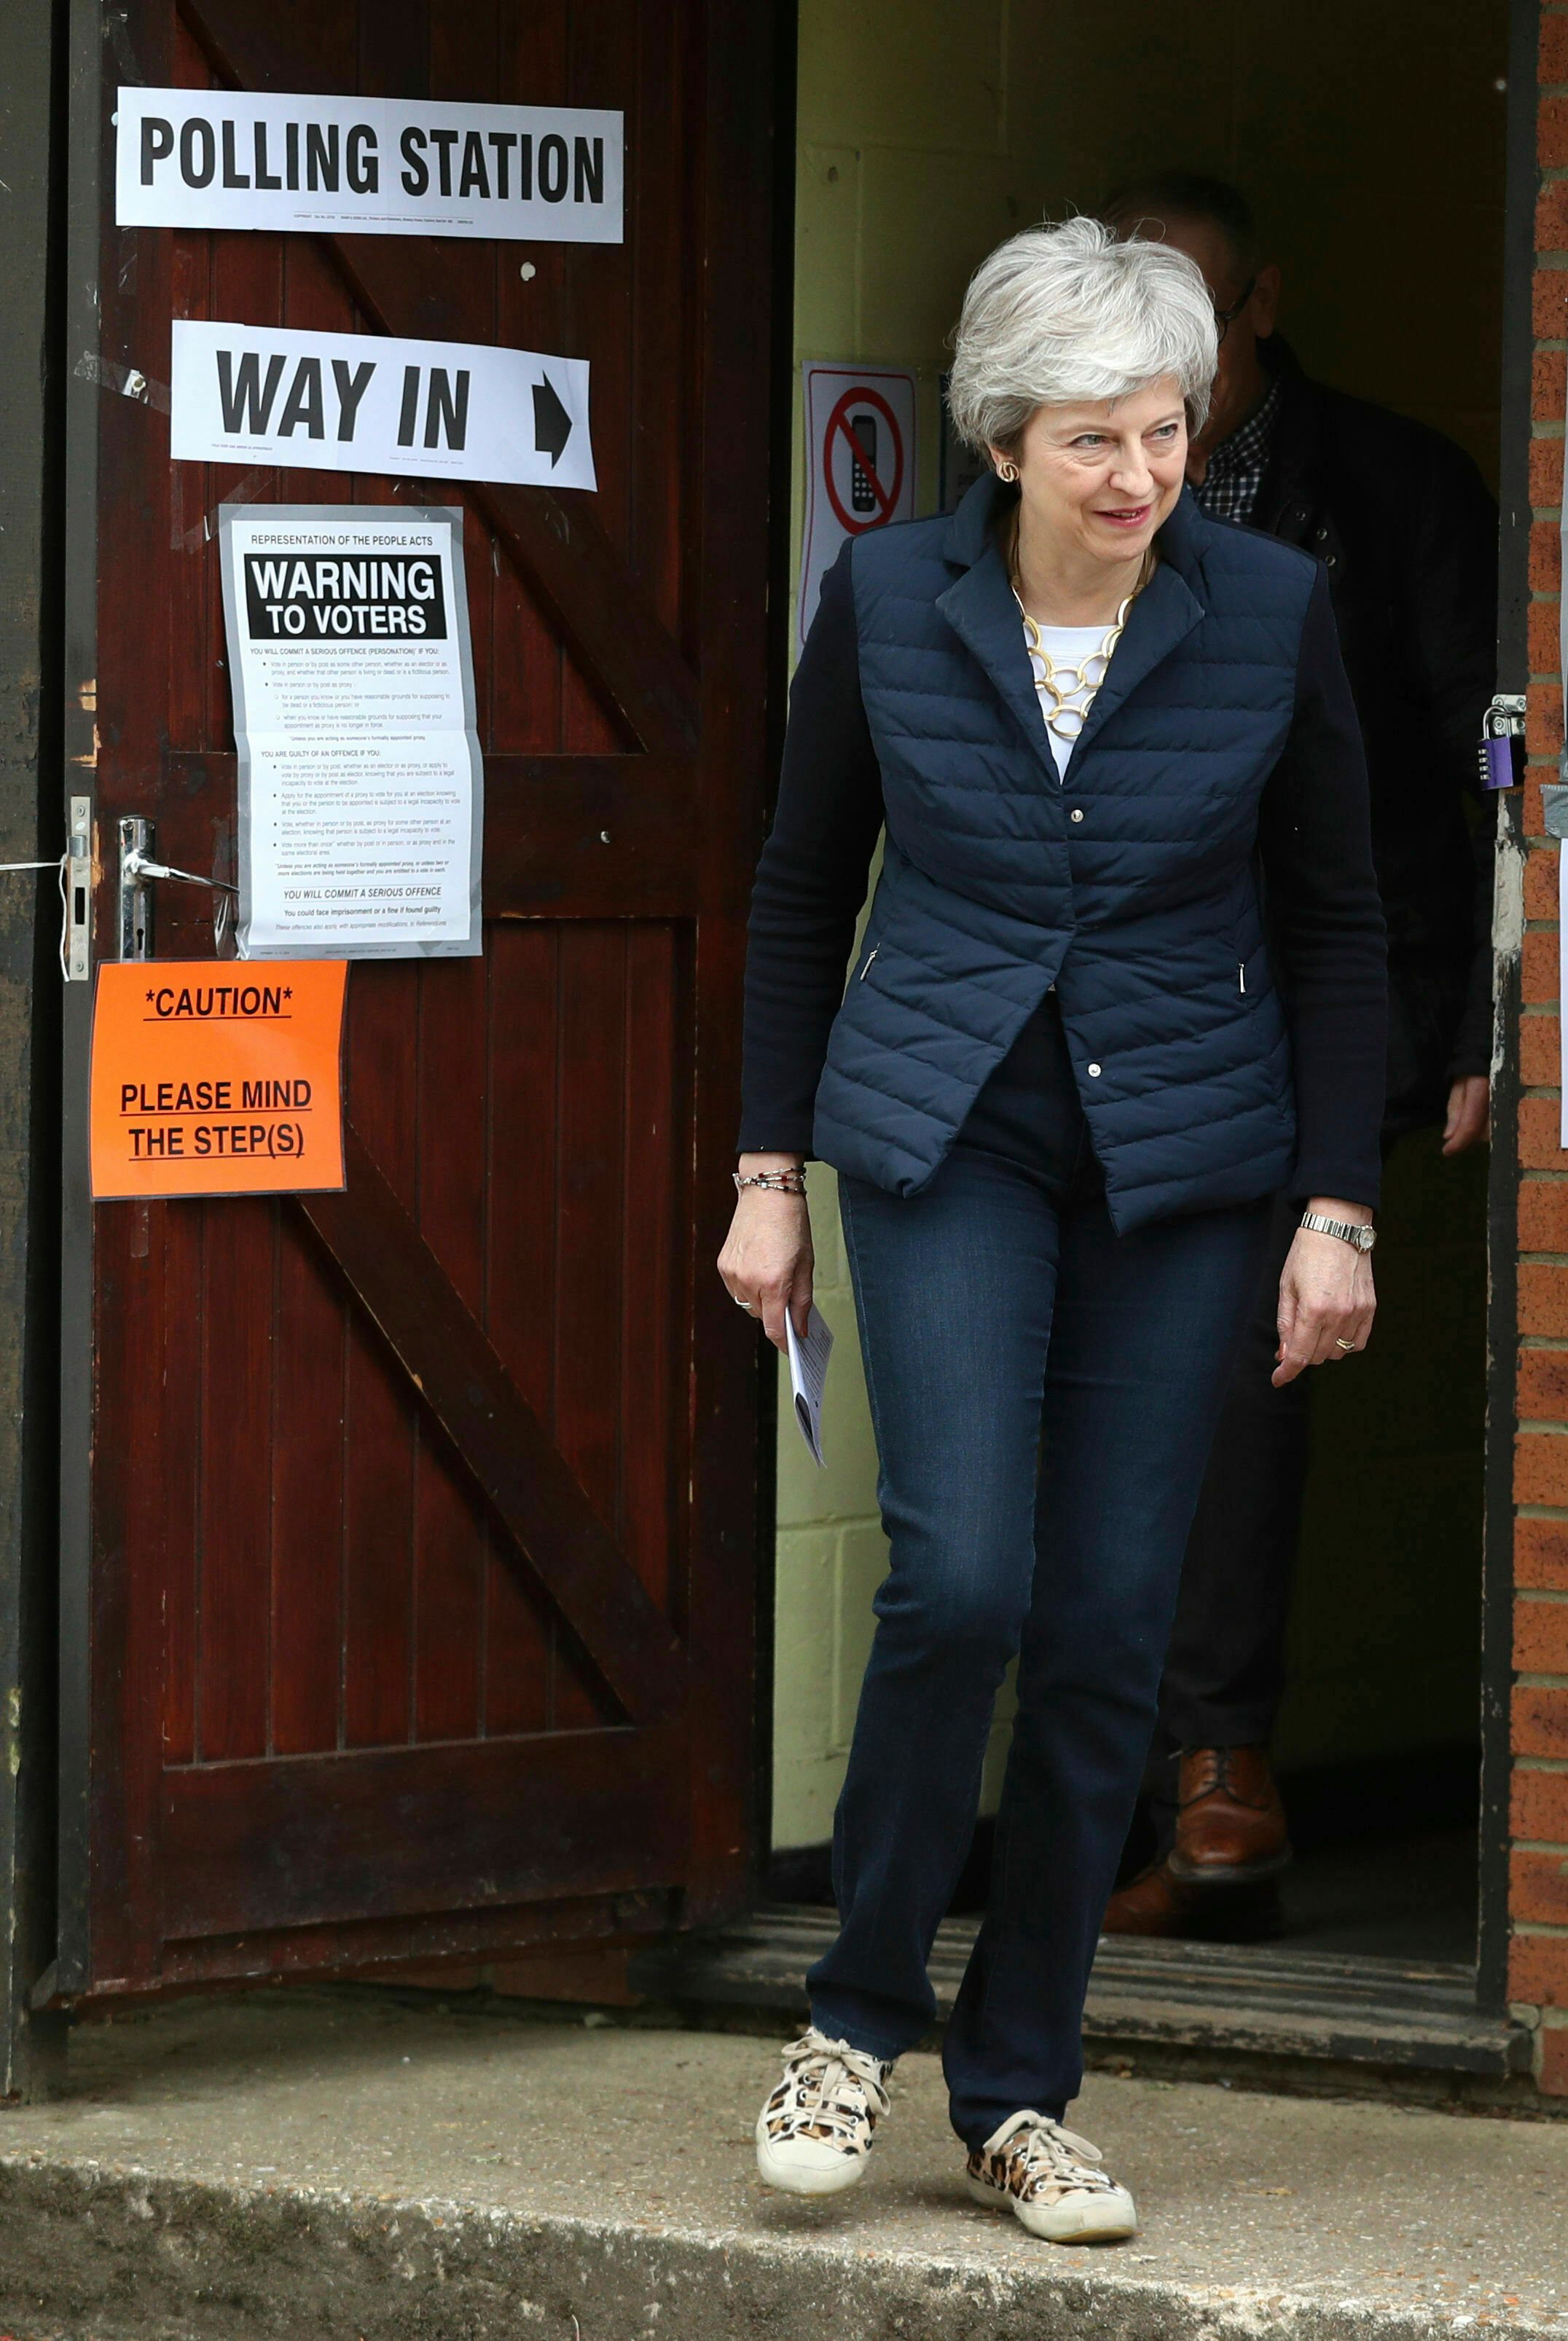 Britain's Prime Minister Theresa May leaves after casting her vote at a polling station near her home in Thames Valley, England, Thursday, May 2, 2019.  as voters headed to the polls for council and mayoral elections across England and Northern Ireland. (Andrew Matthews/PA via AP)